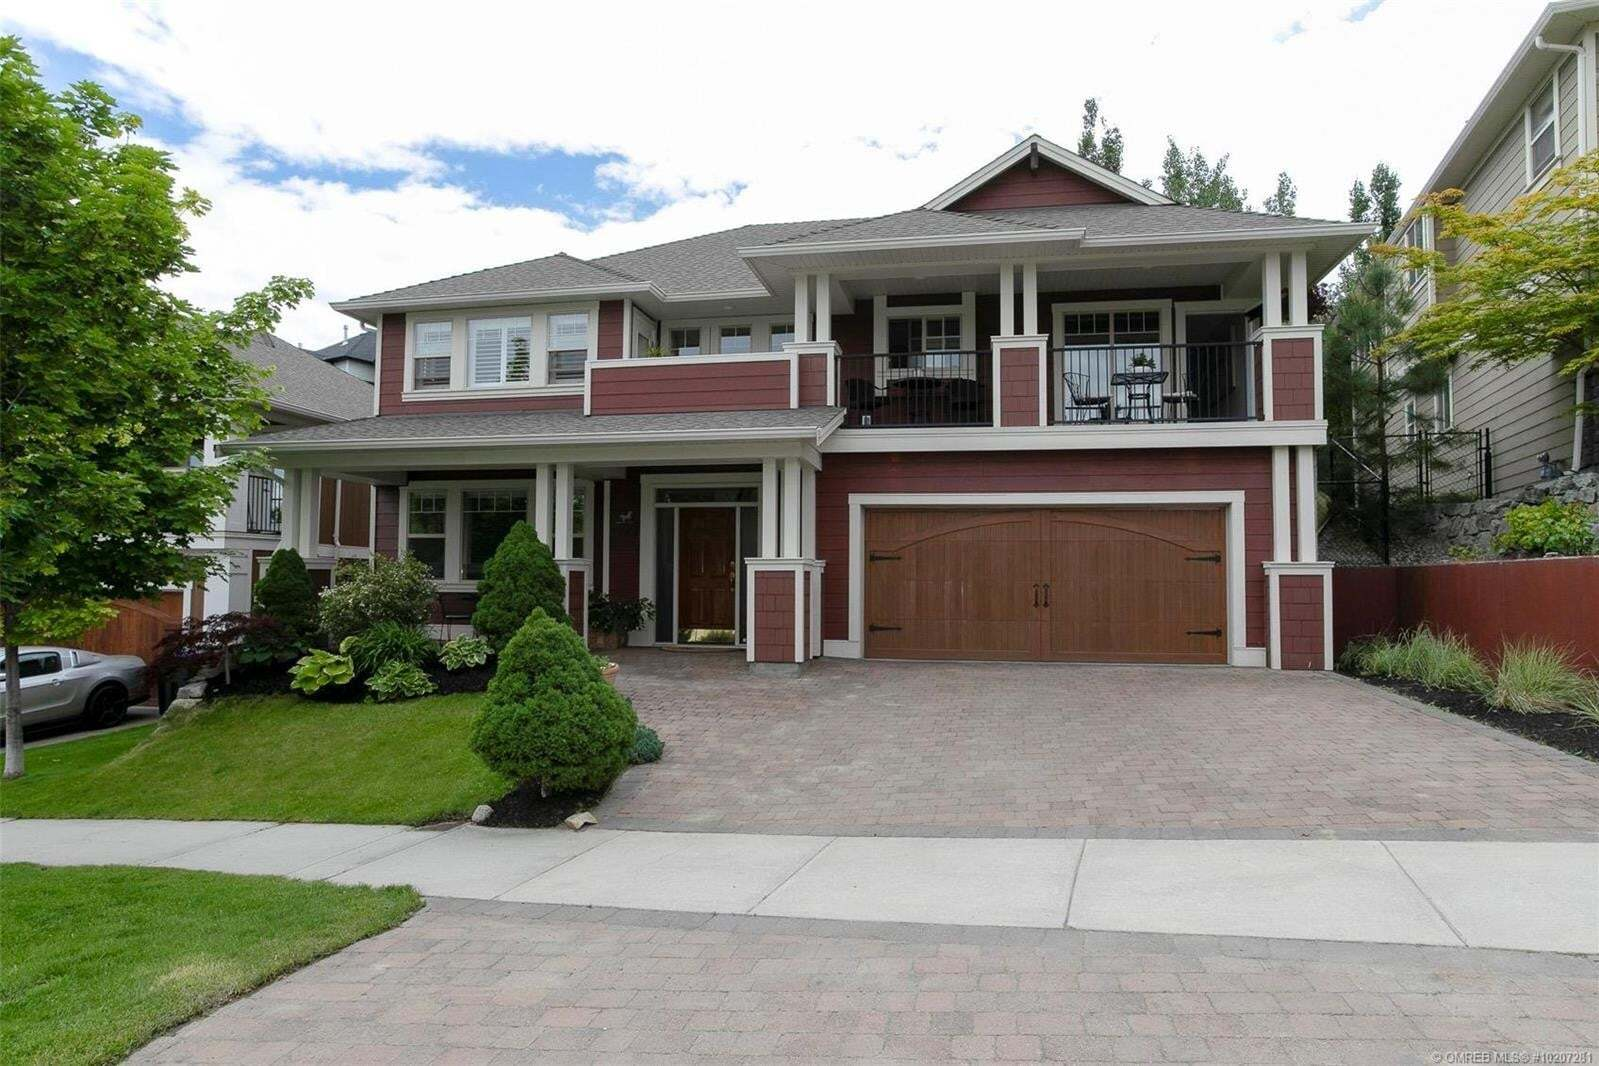 House for sale at 327 Quilchena Dr Kelowna British Columbia - MLS: 10207281